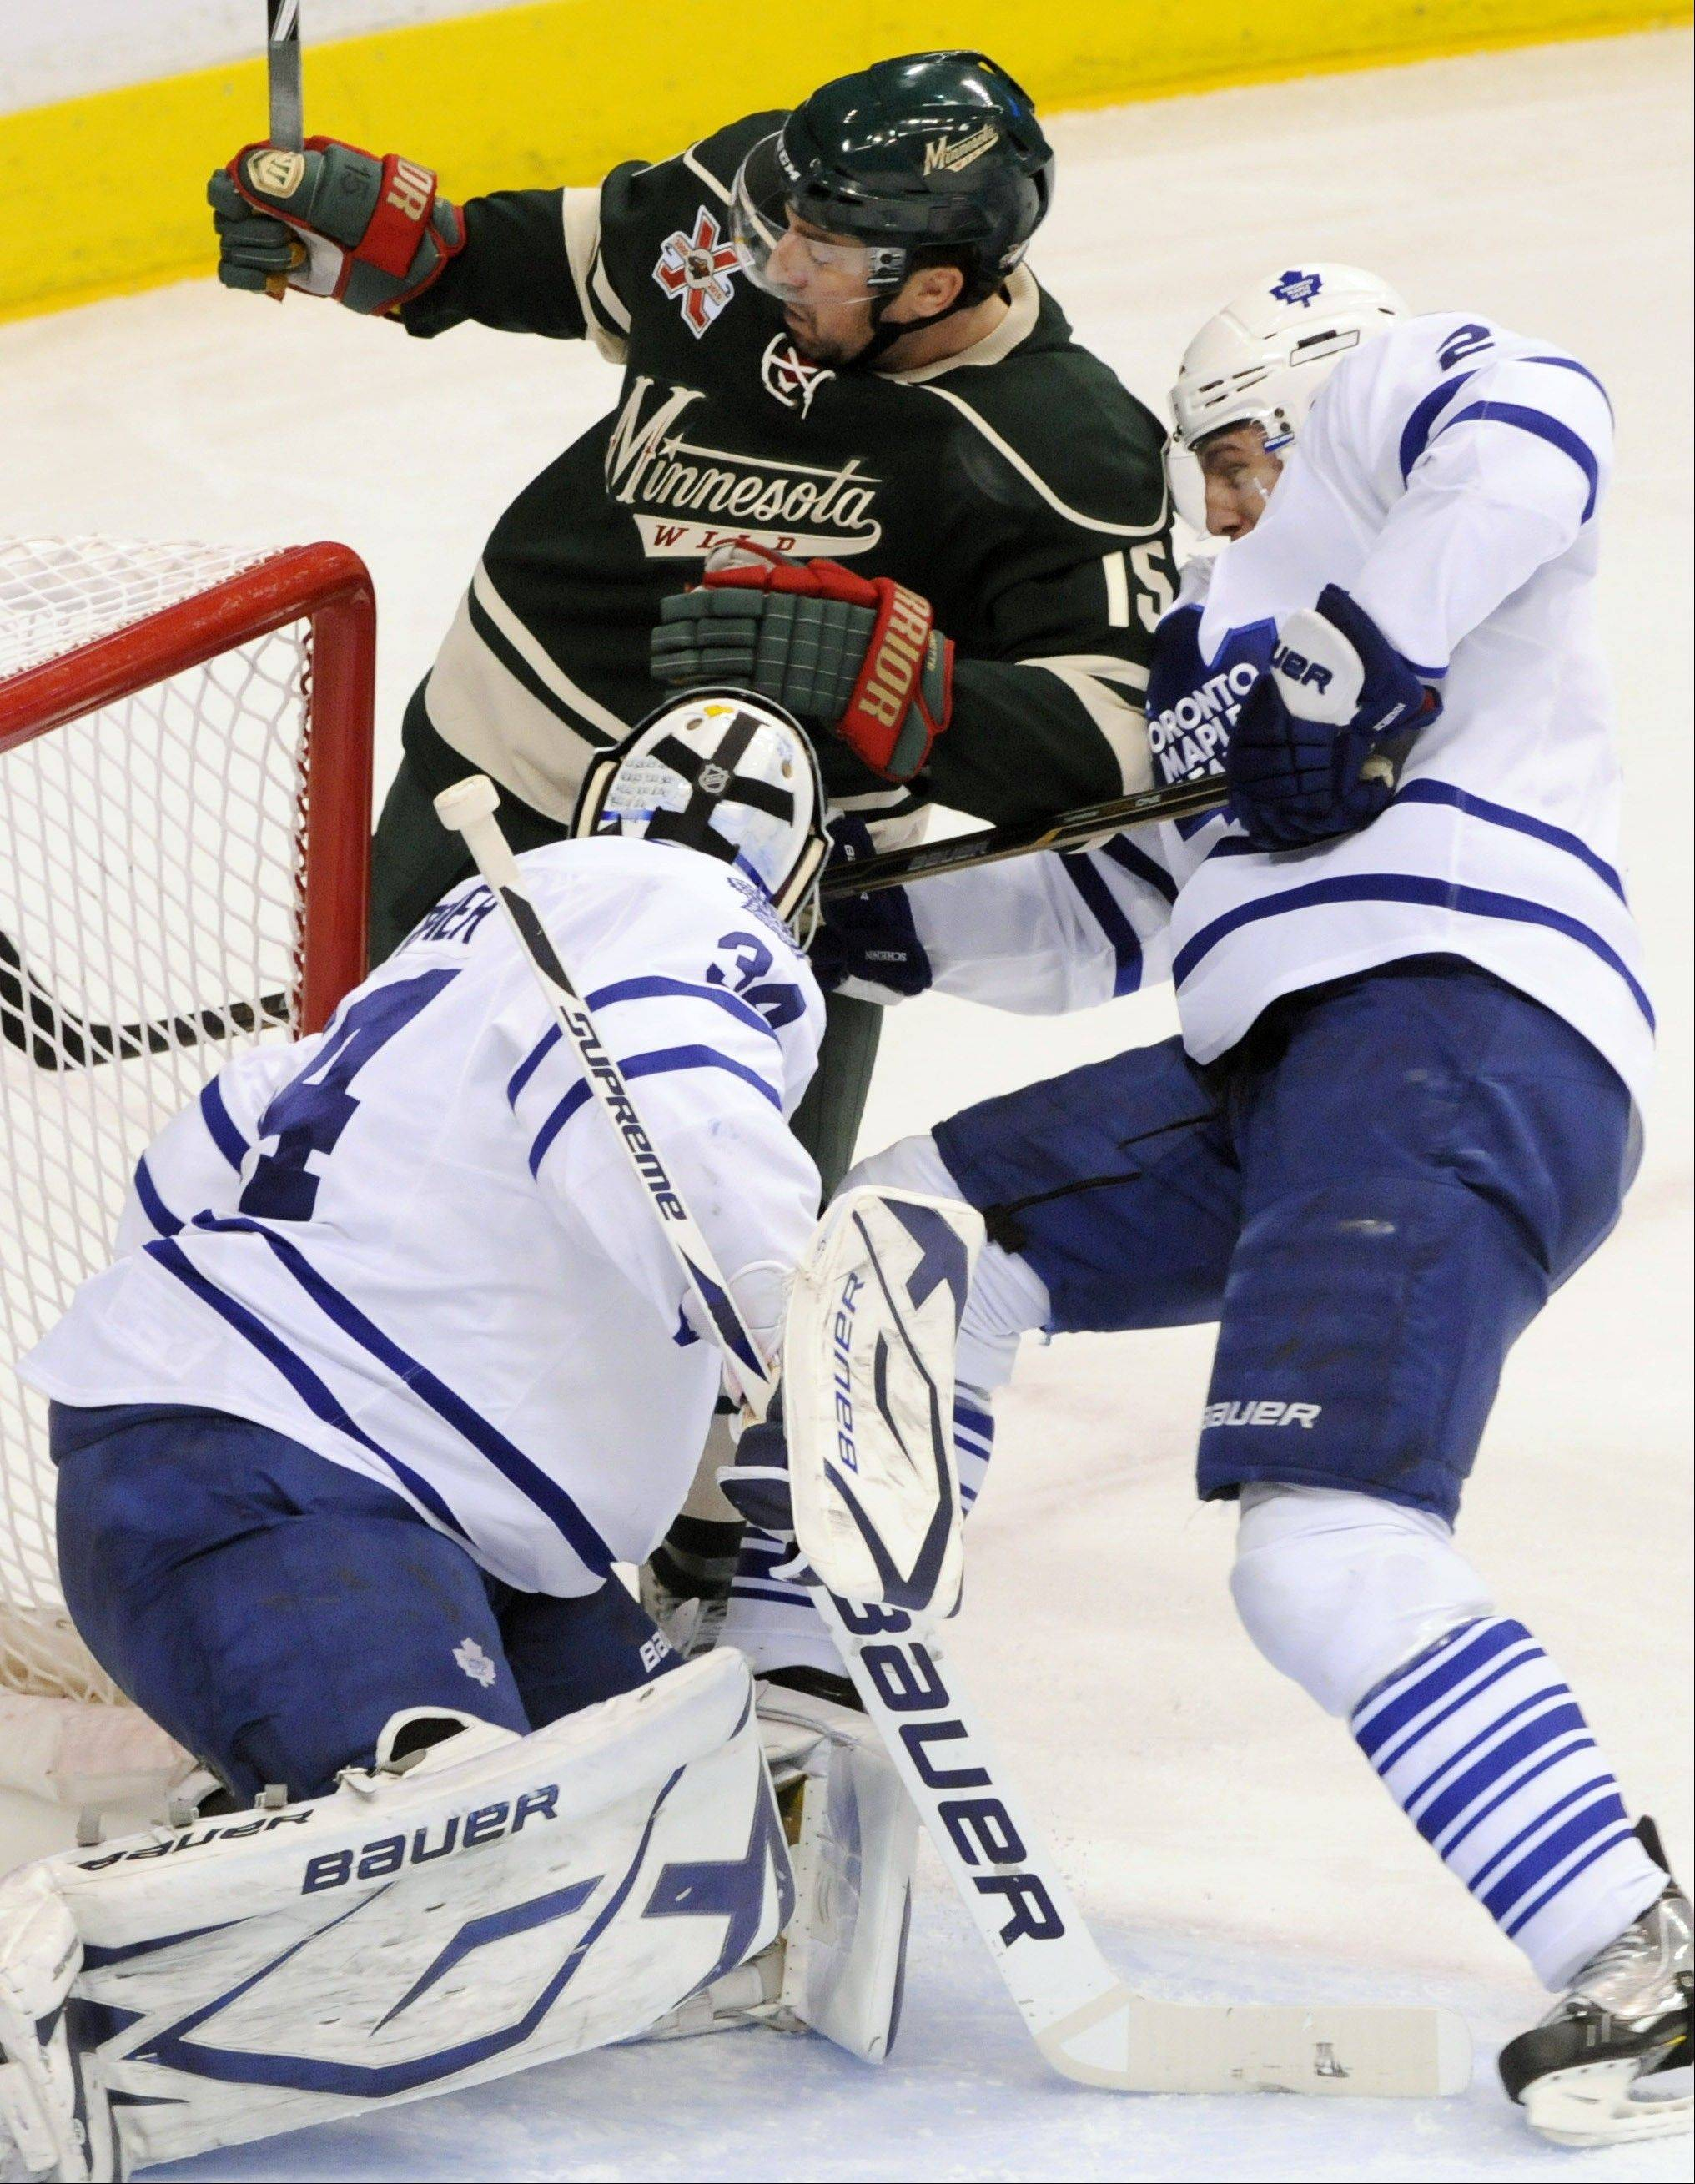 Toronto Maple Leafs' Luke Schenn, right, helps goalie James Reimer defend the net against Minnesota's Andrew Brunette last March. The Blackhawks signed the gritty Brunette on Friday.